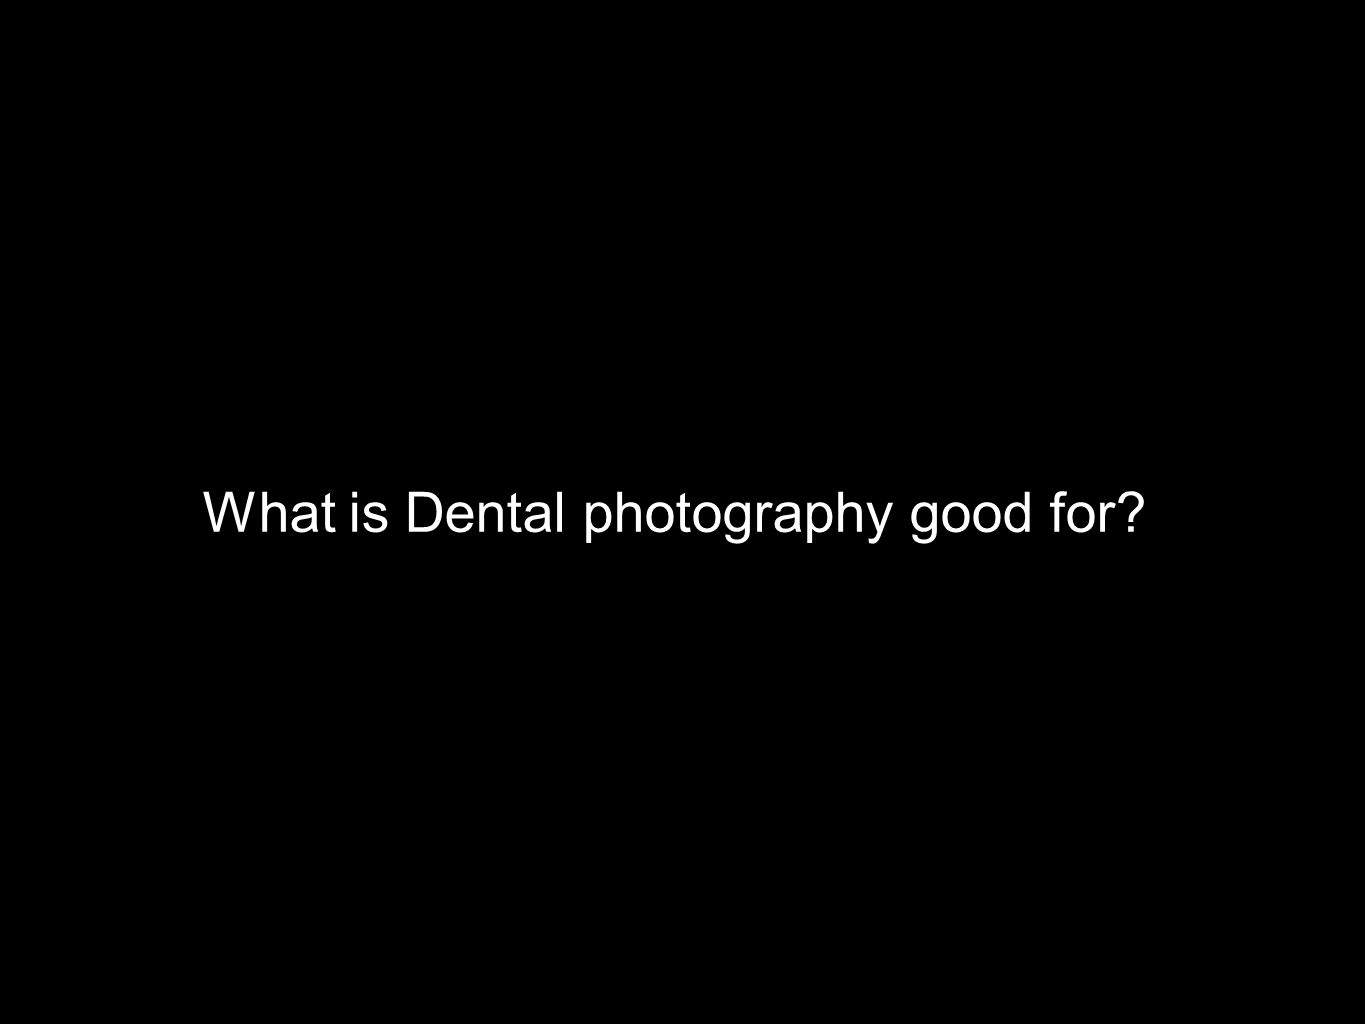 What is Dental photography good for